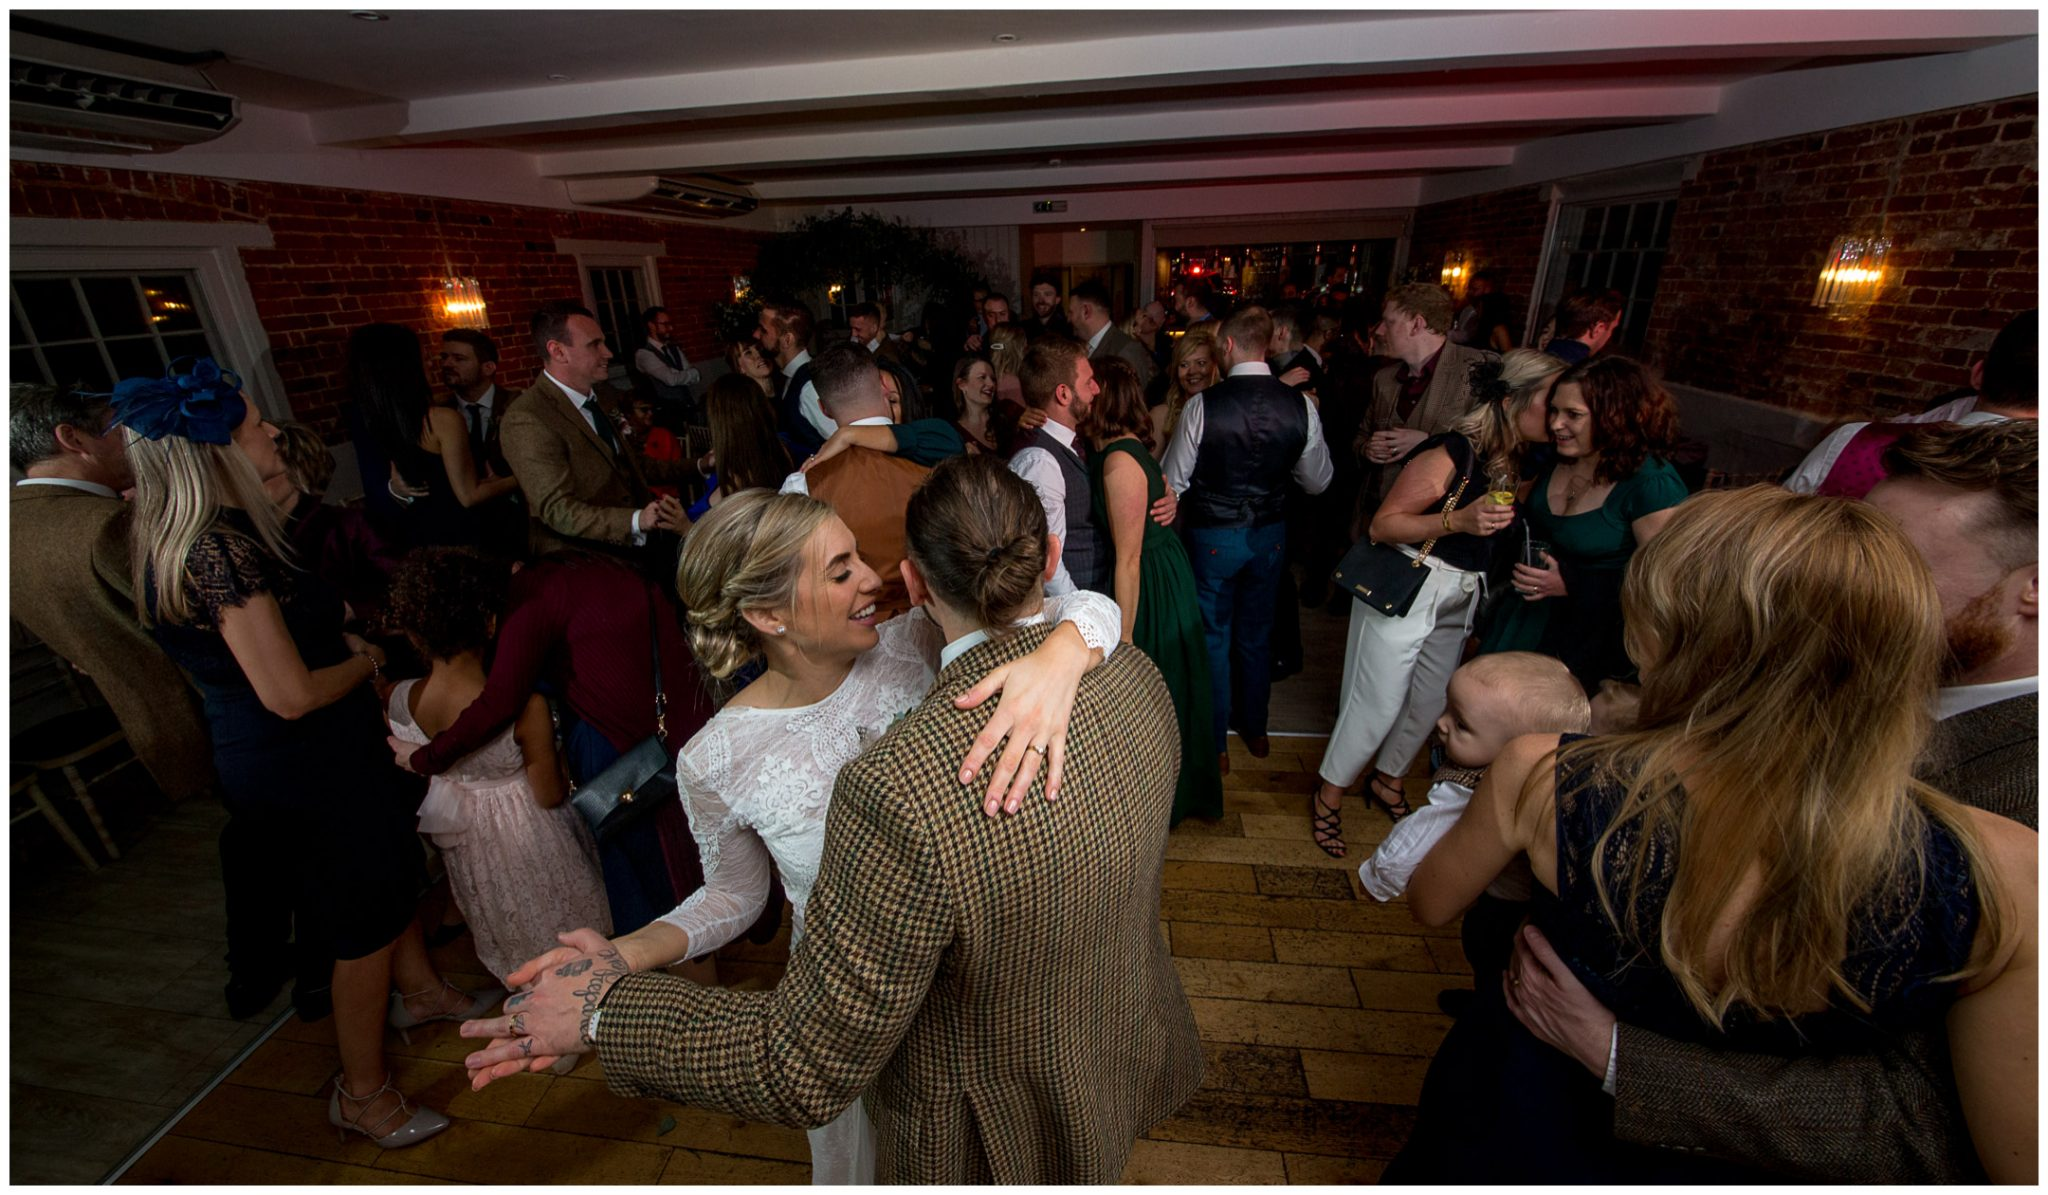 Guests hit the dancefloor for the evening party